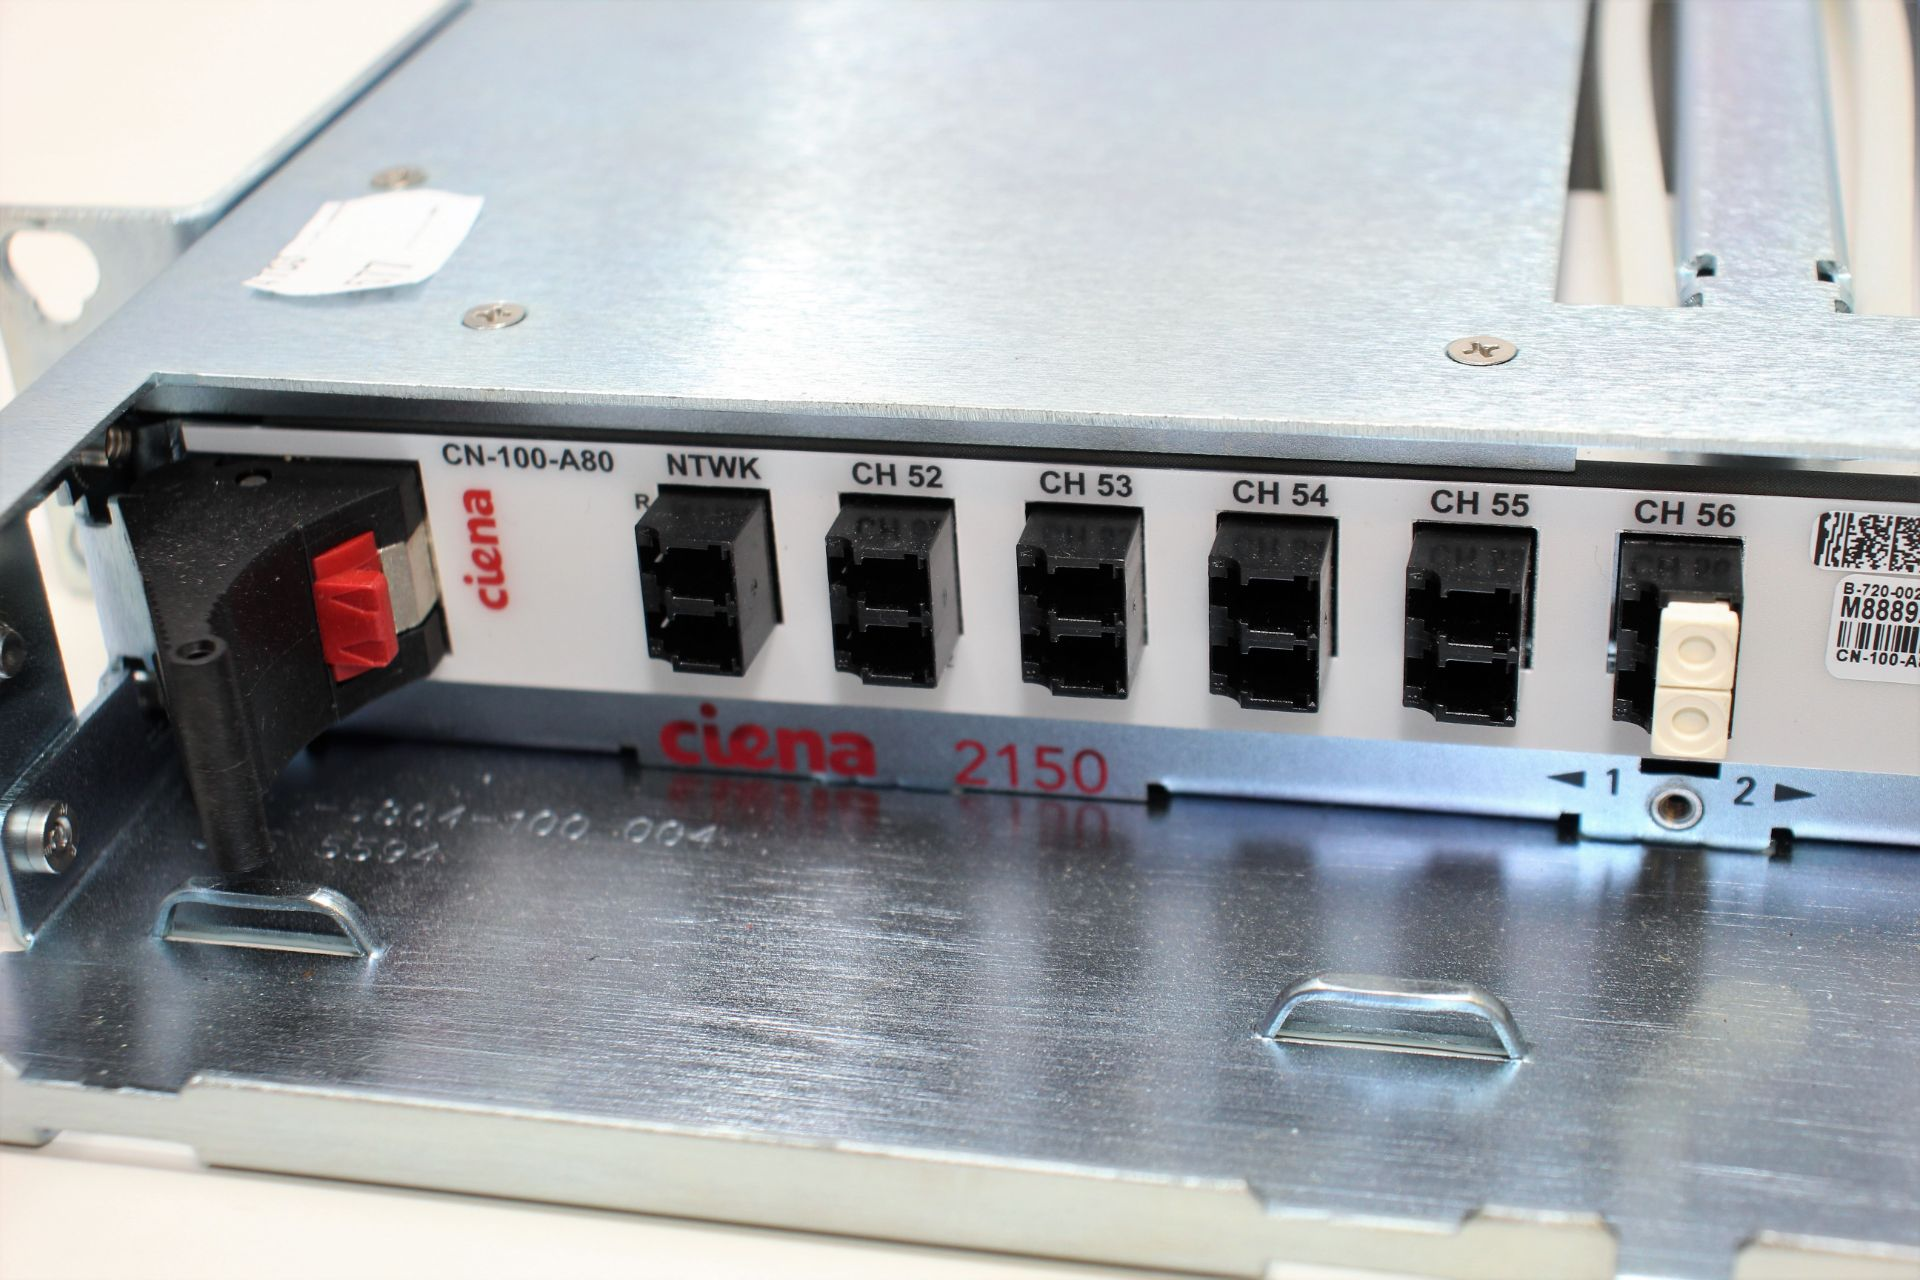 A pre-owned Ciena CN-100-A80 B-720-0022-001 WM0AALWEAA M8889264 DWDM Module (Untested, sold as - Image 3 of 3